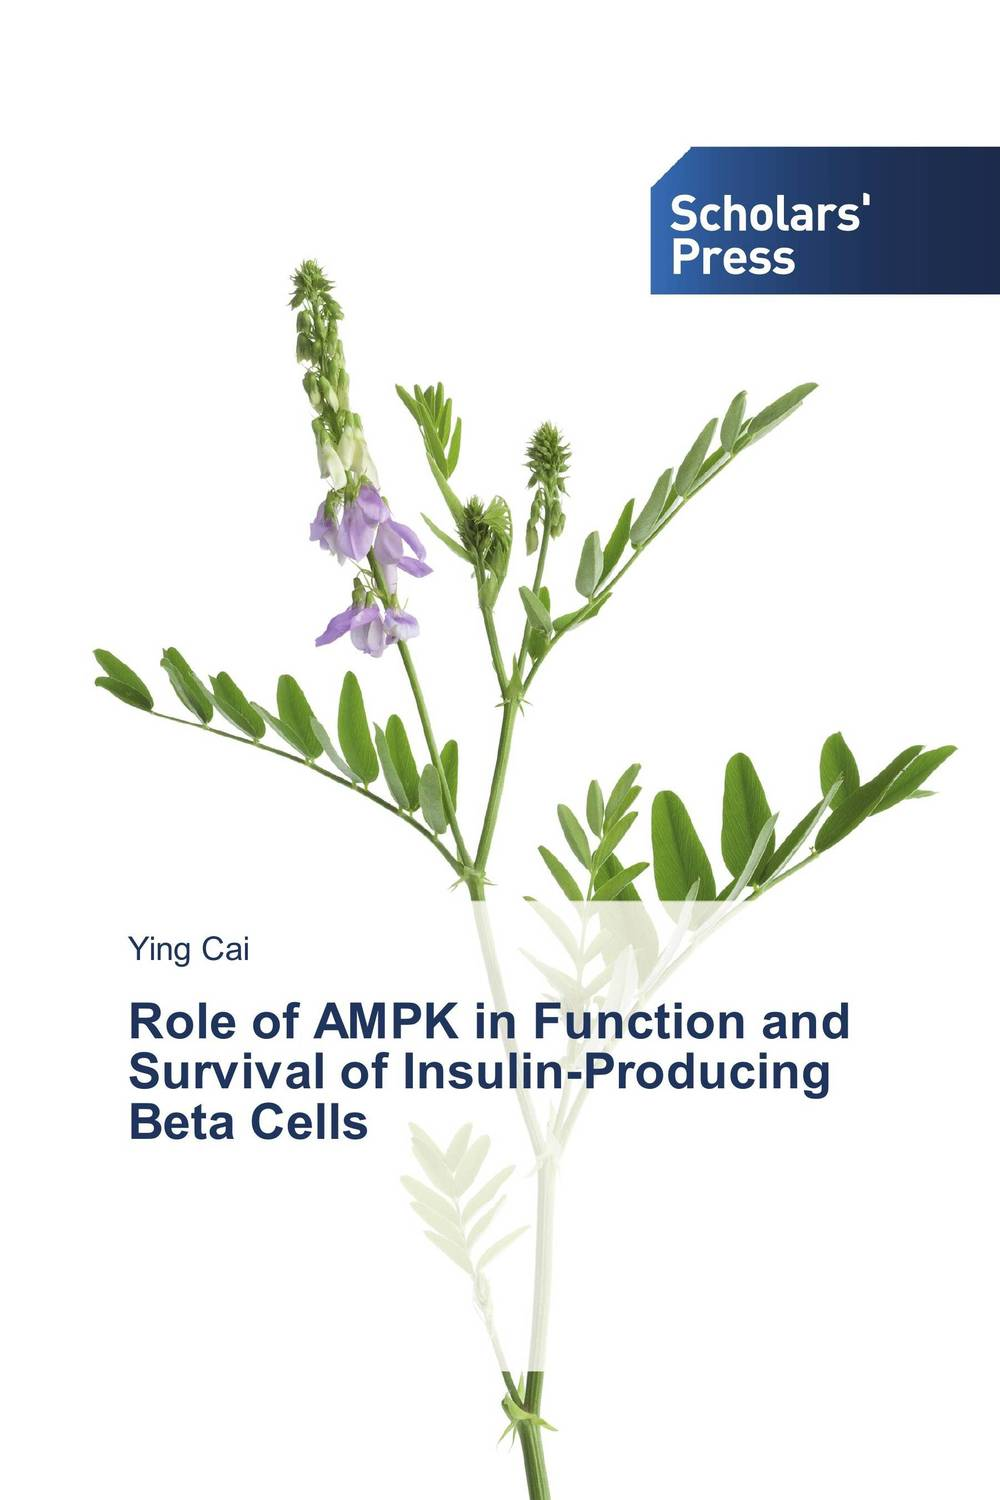 Role of AMPK in Function and Survival of Insulin-Producing Beta Cells the role of dna damage and repair in cell aging 4